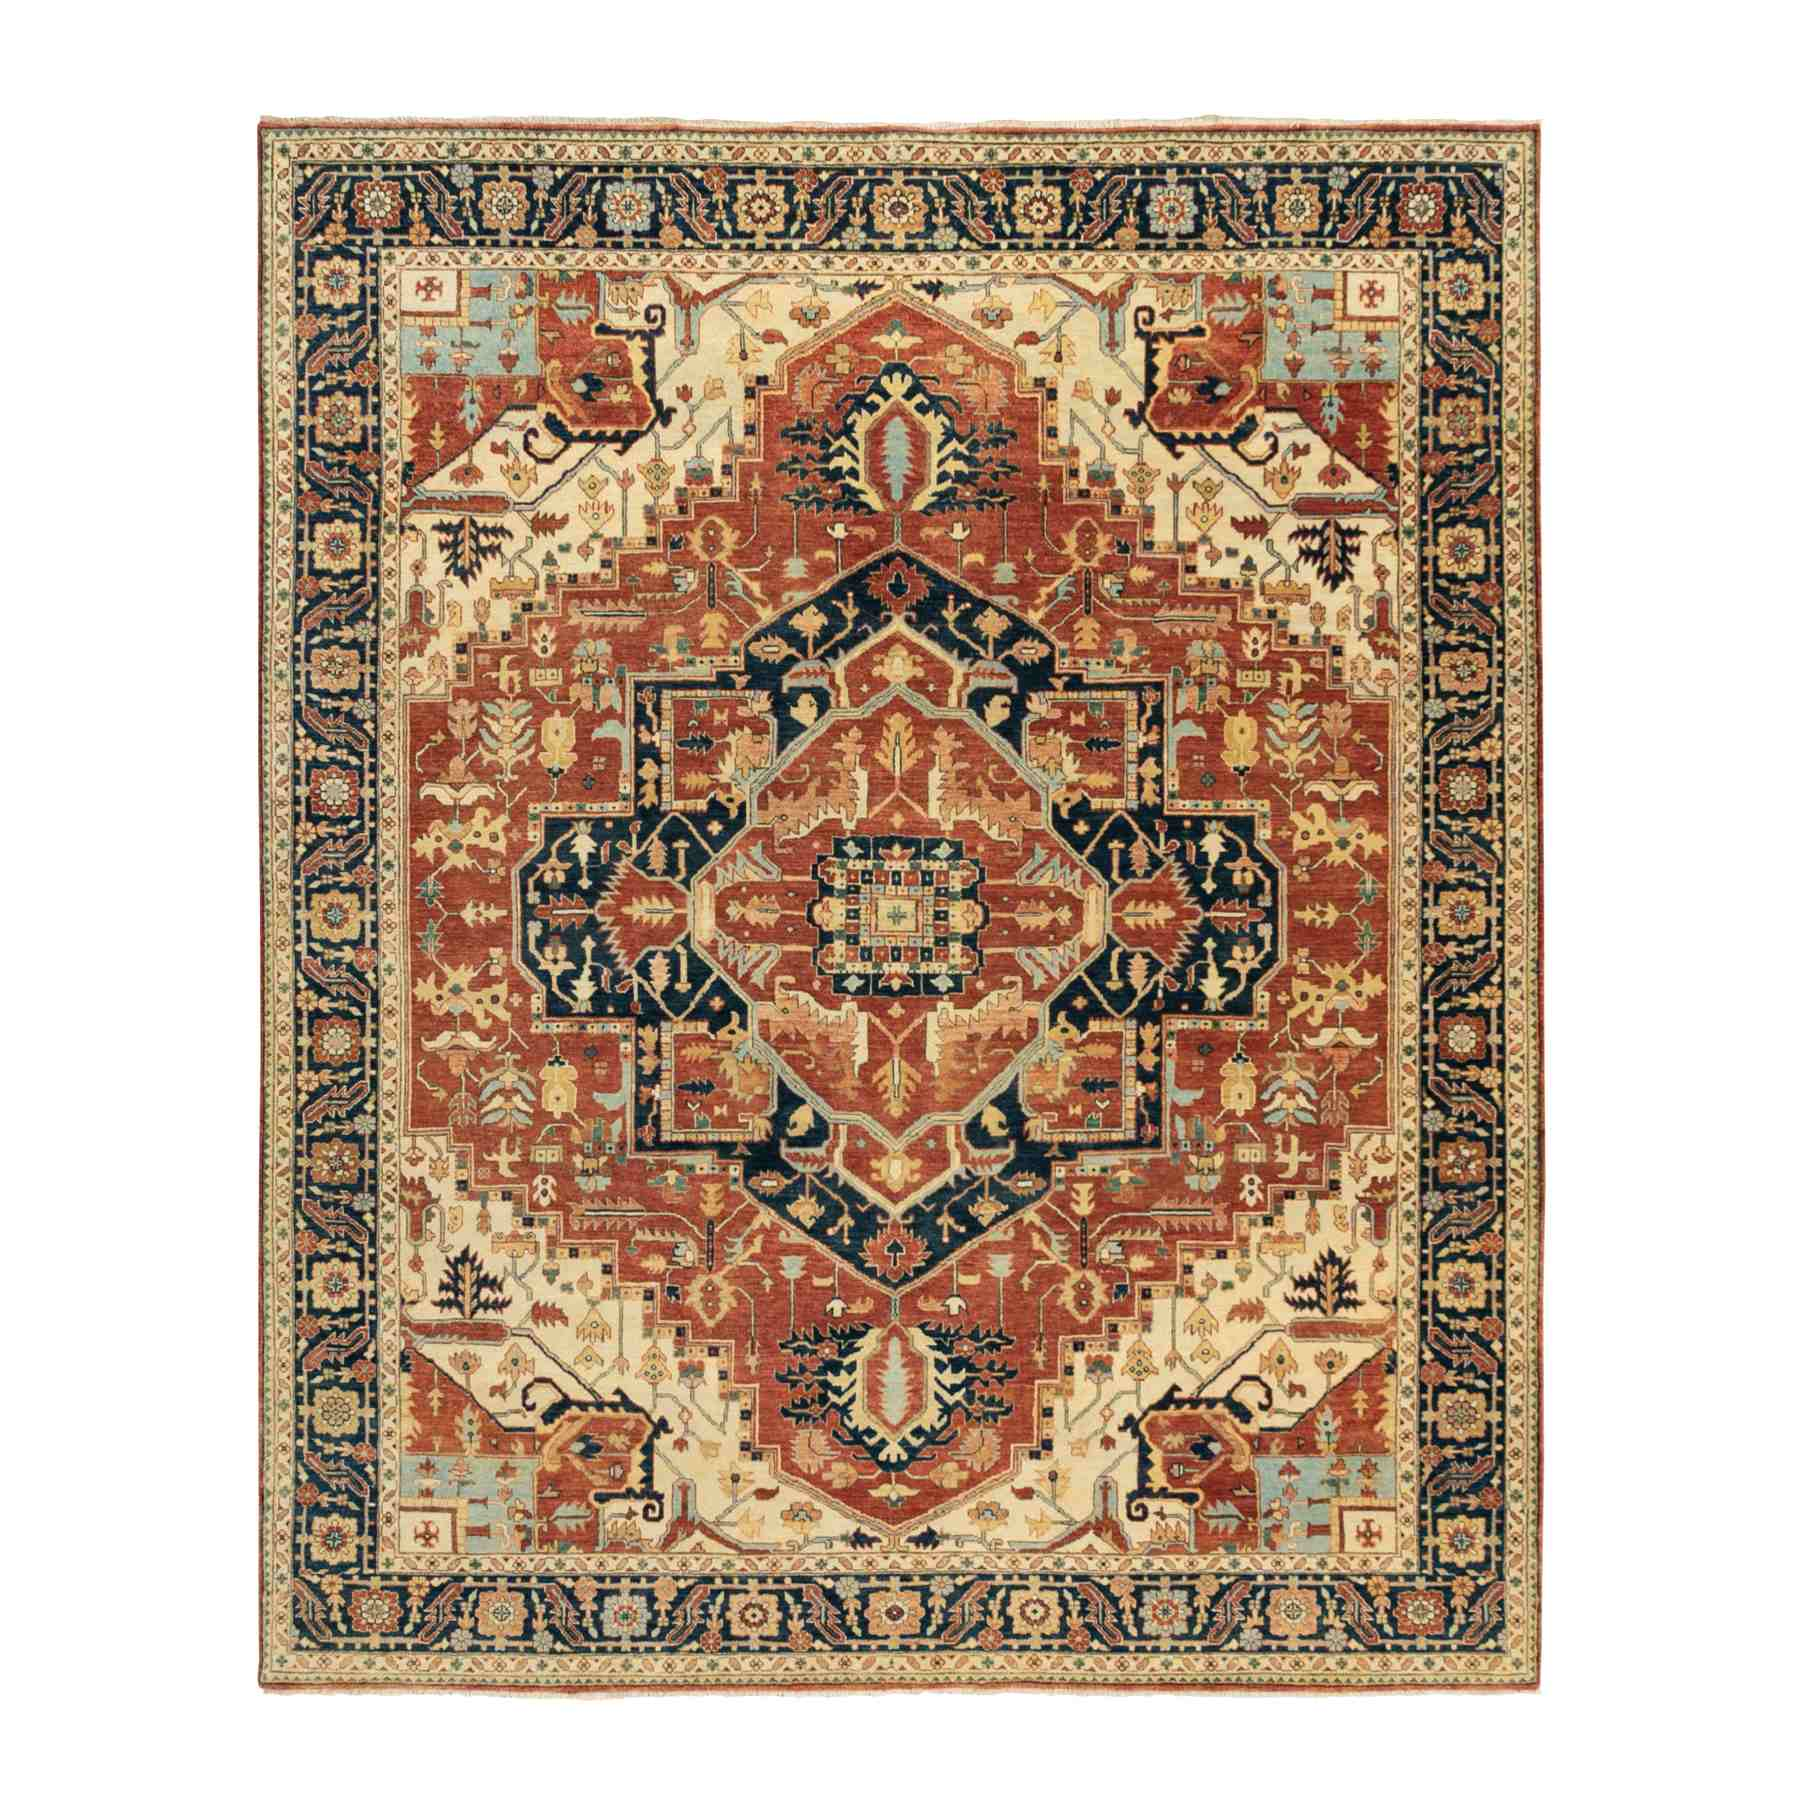 Heriz-Hand-Knotted-Rug-294915